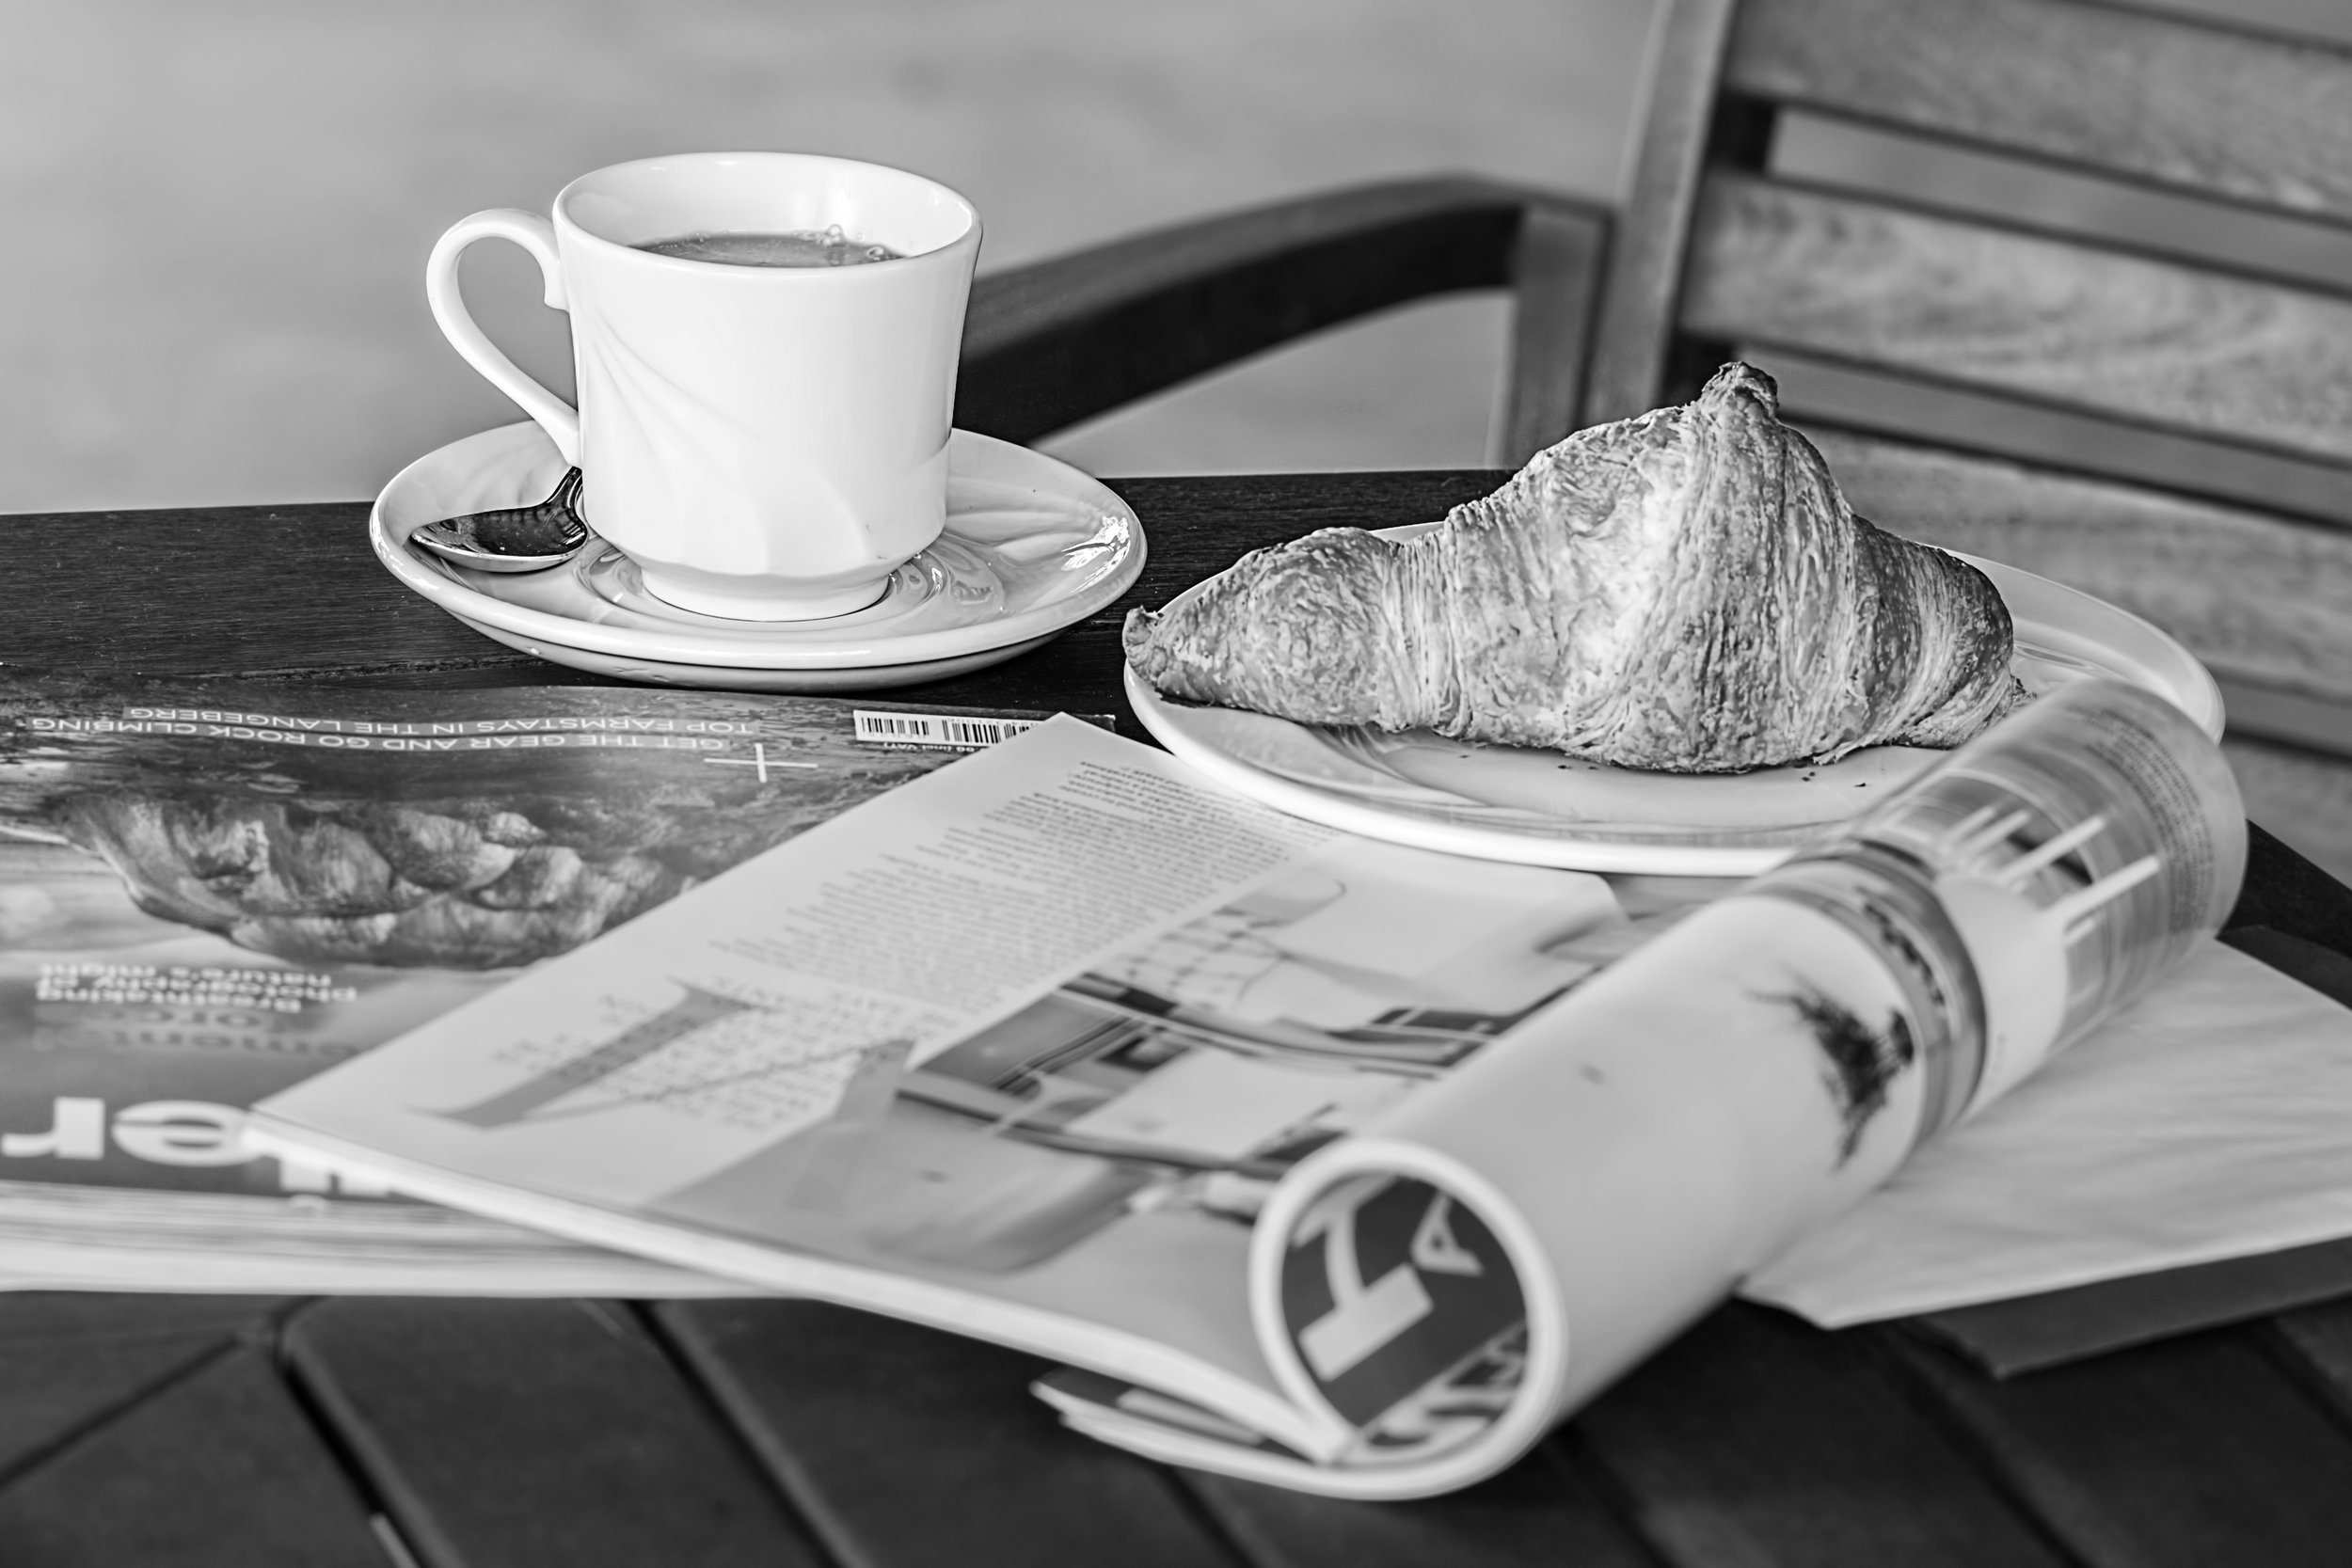 A cup of coffee and a croissant sit on top of two magazines on a wooden table.